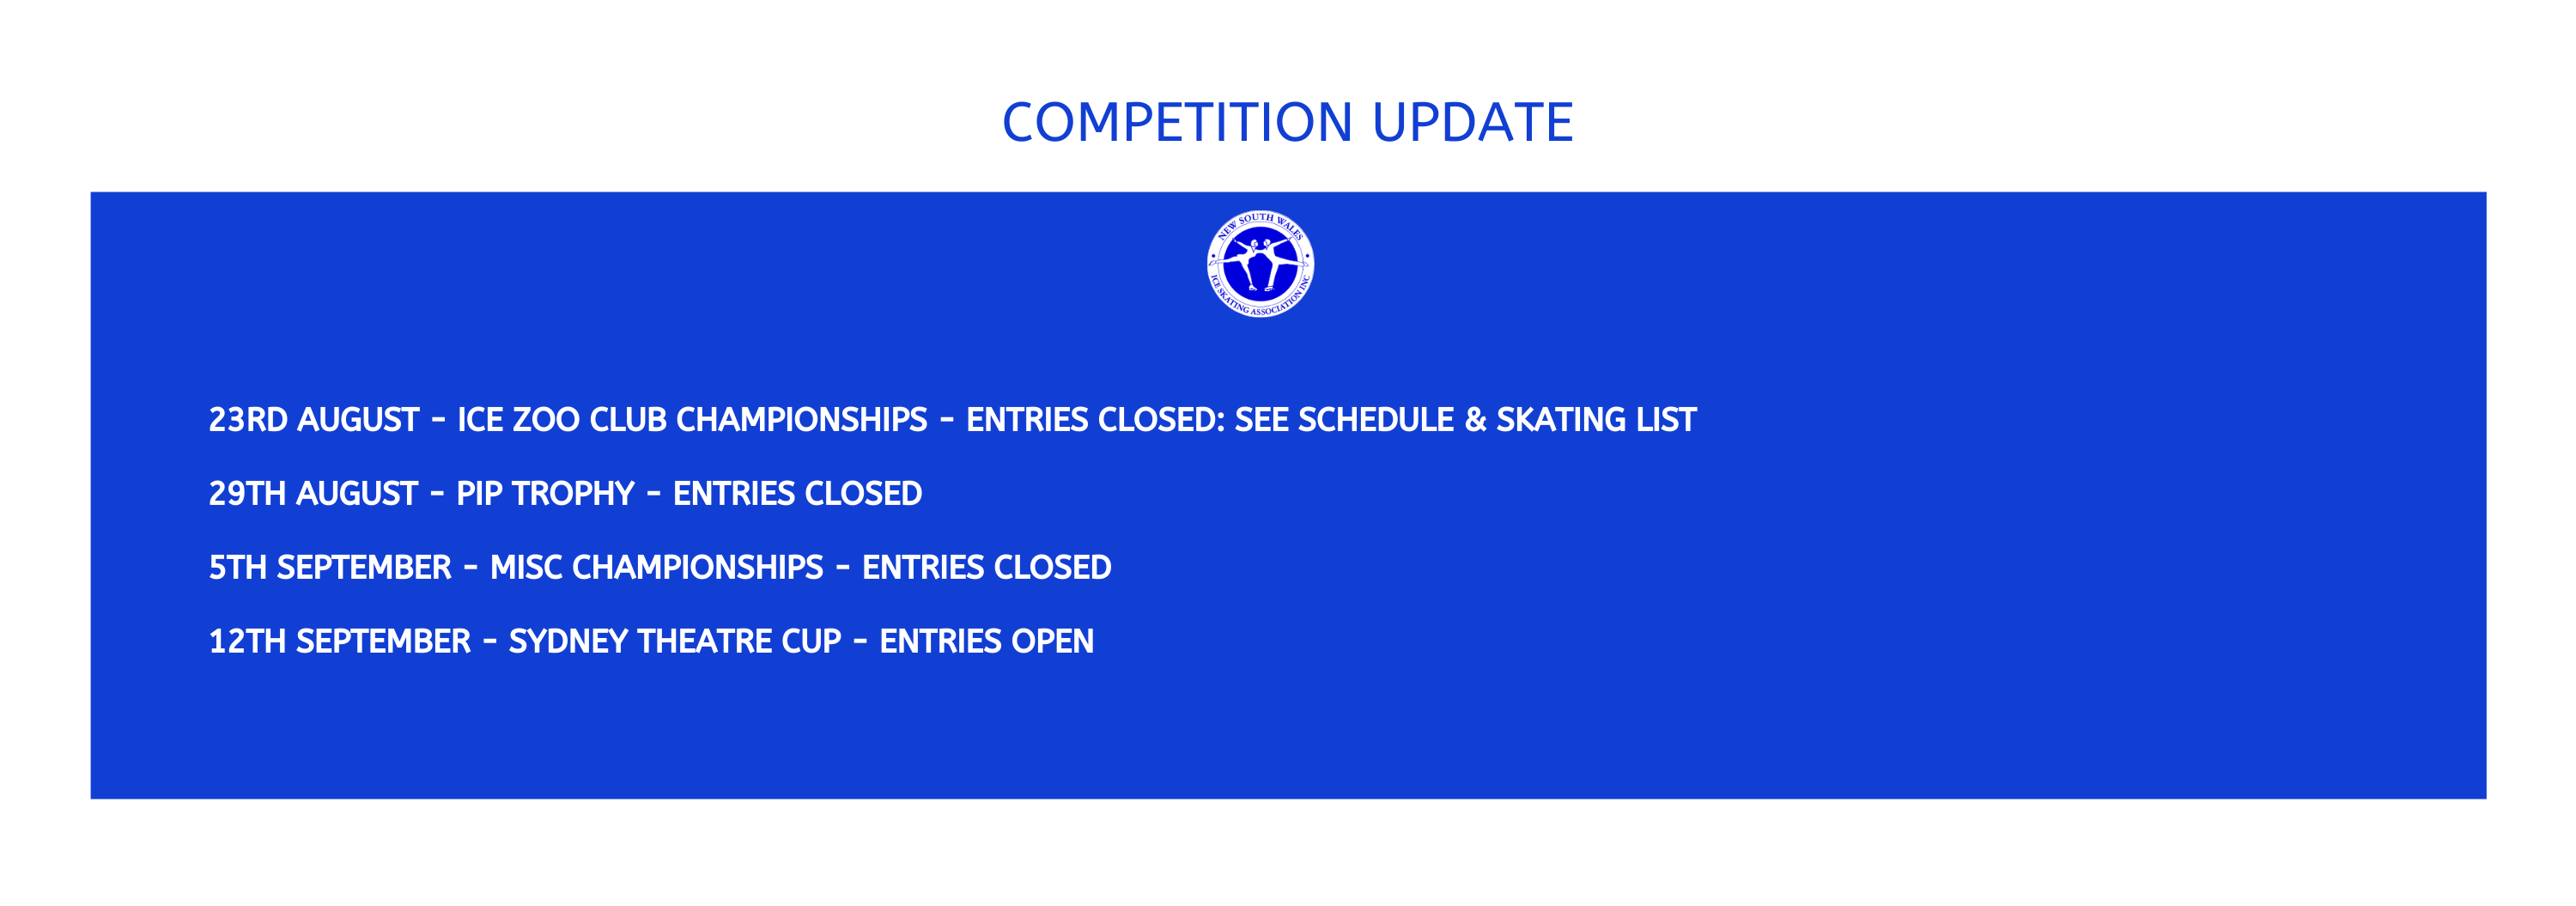 Competition updates